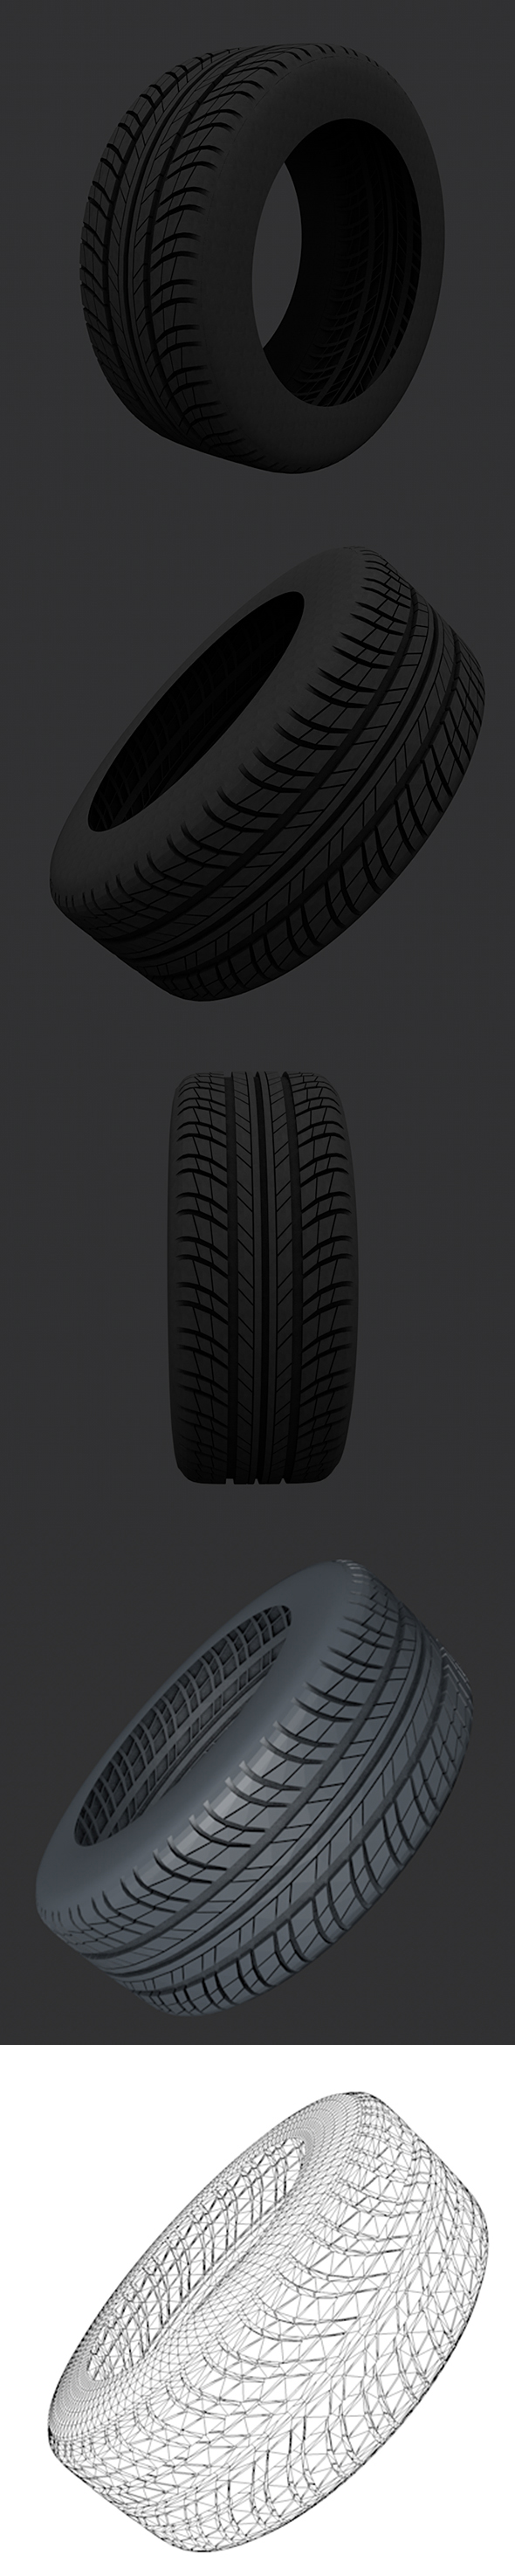 Tire 3D Models with full textures - 3DOcean Item for Sale